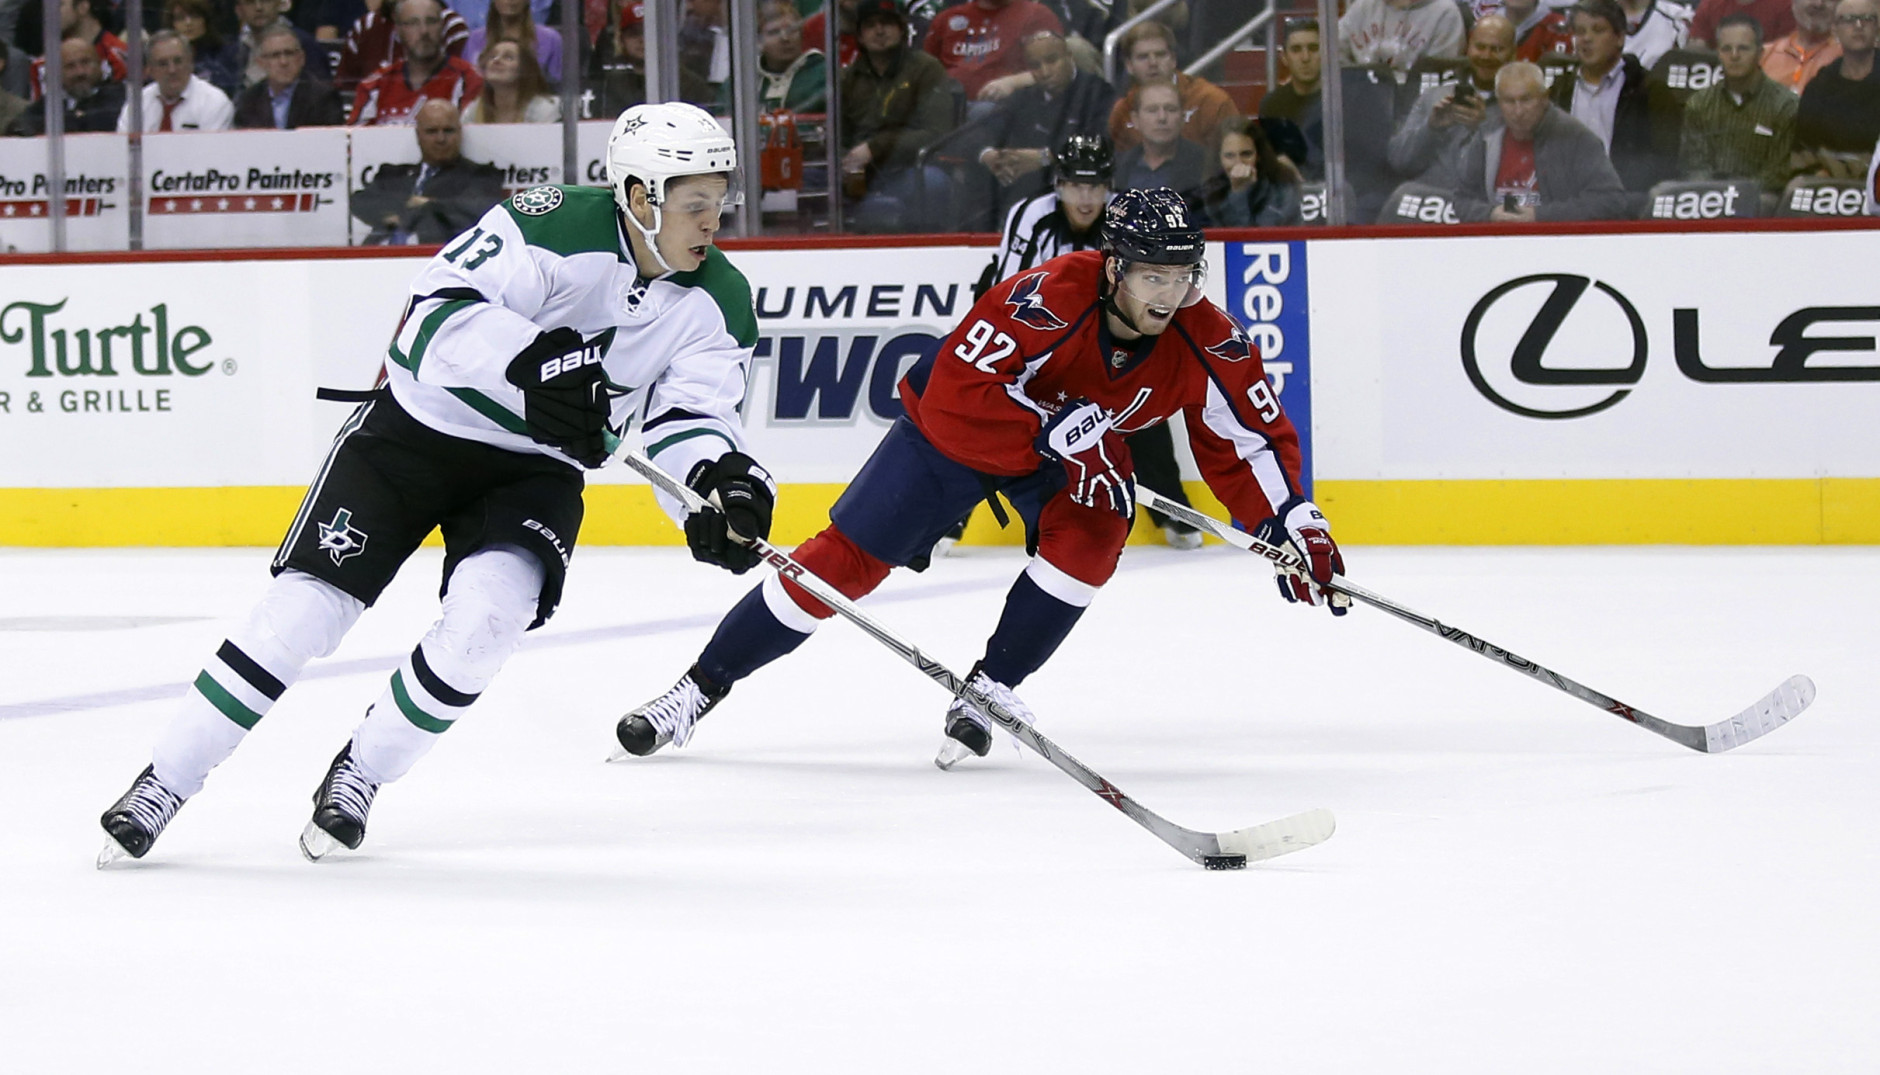 Dallas Stars center Mattias Janmark (13), from Sweden, skates with the puck as Washington Capitals center Evgeny Kuznetsov (92), from Russia, defends during the second period of an NHL hockey game, Thursday, Nov. 19, 2015, in Washington. (AP Photo/Alex Brandon)